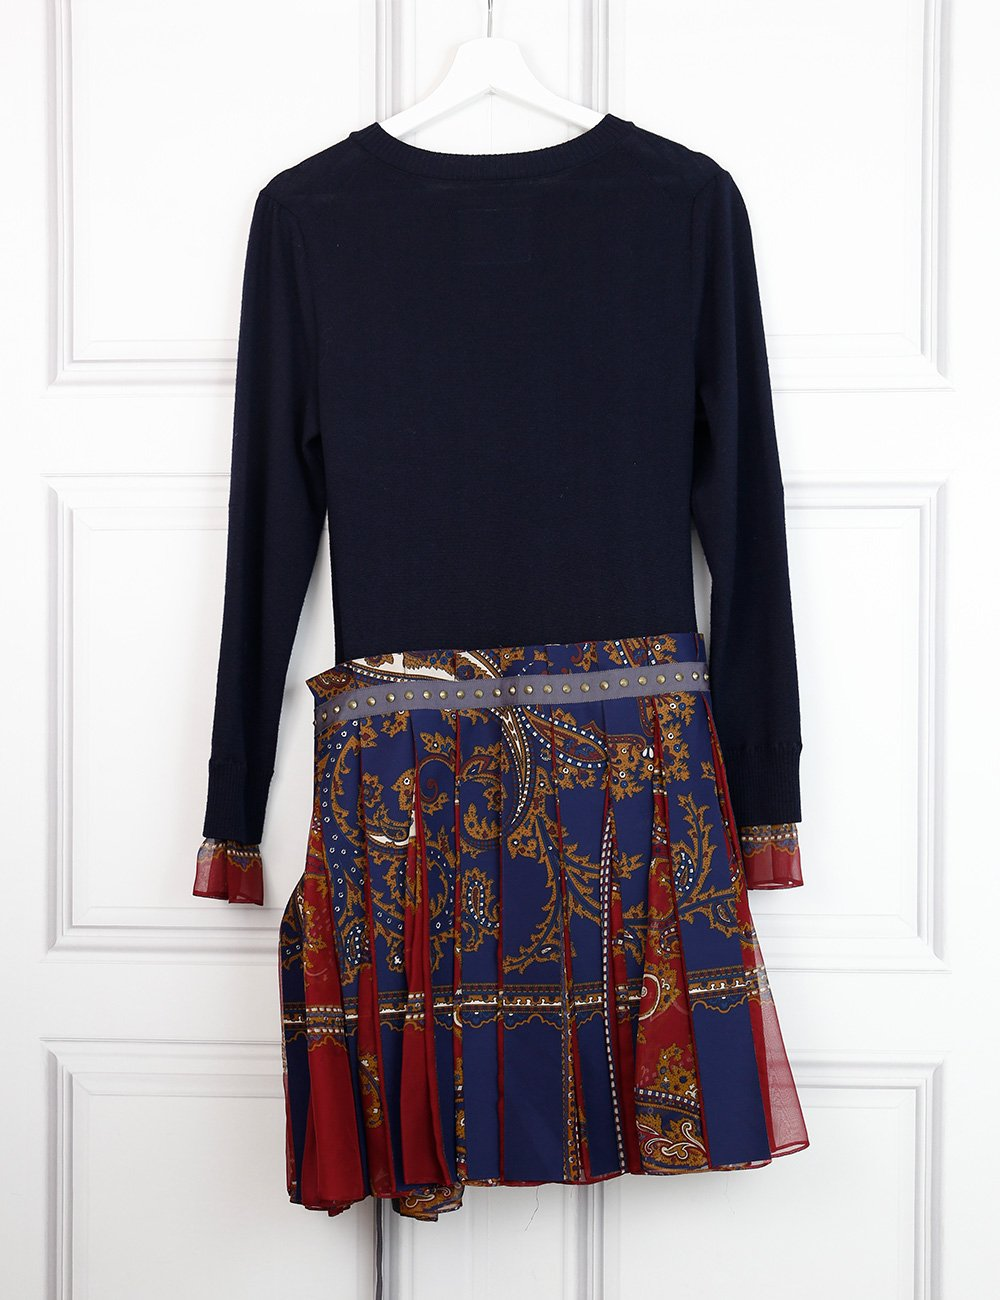 Sacai multicolour woollen dress with pleated skirt 12 UK- My Wardrobe Mistakes